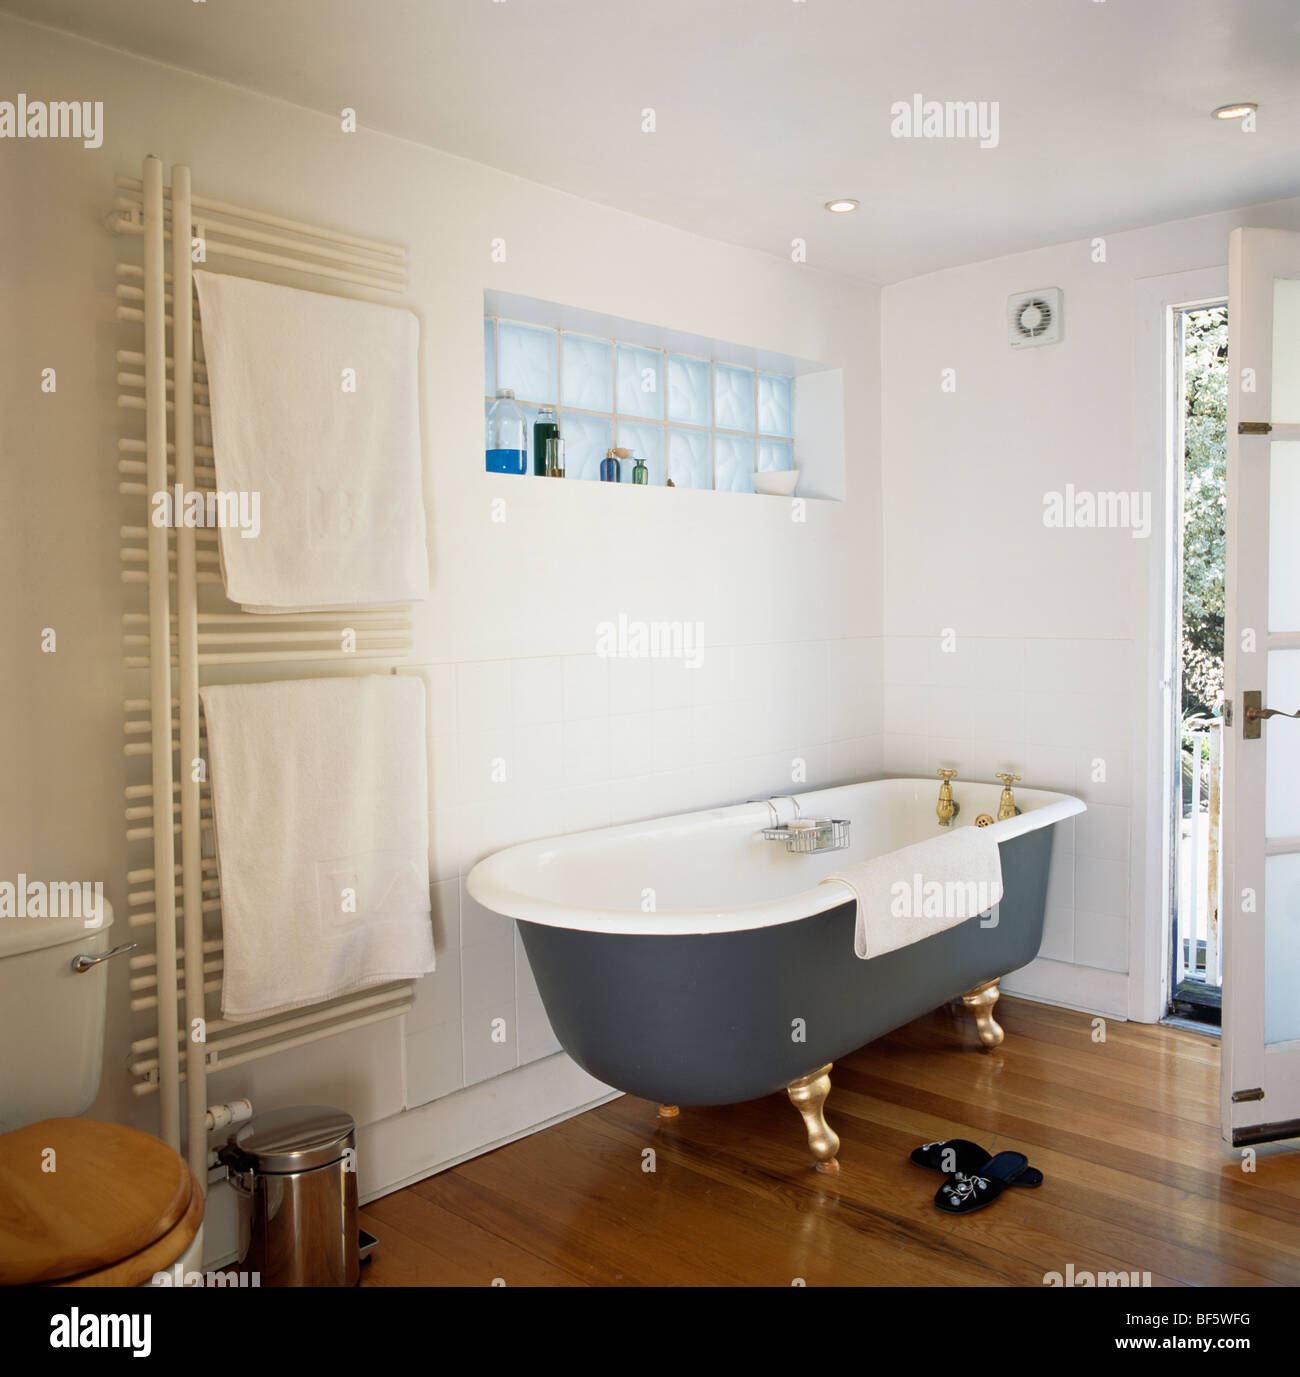 Grey Country Bathroom With Rolltop Bath: Black Roll-top Bath And Wooden Flooring In Modern White